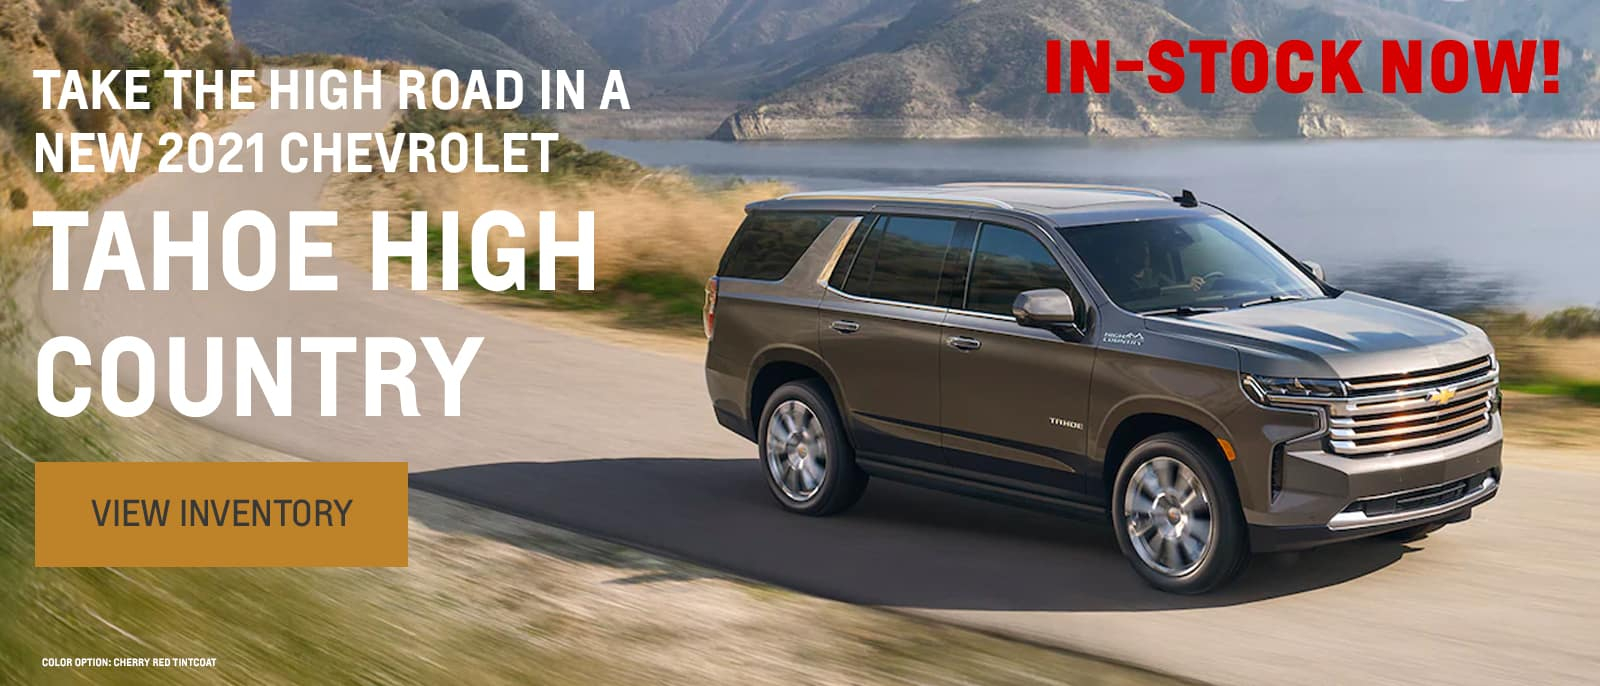 Take the high road in a New 2021 Chevrolet Tahoe High Country, Color Option: Cherry Red Tintcoat